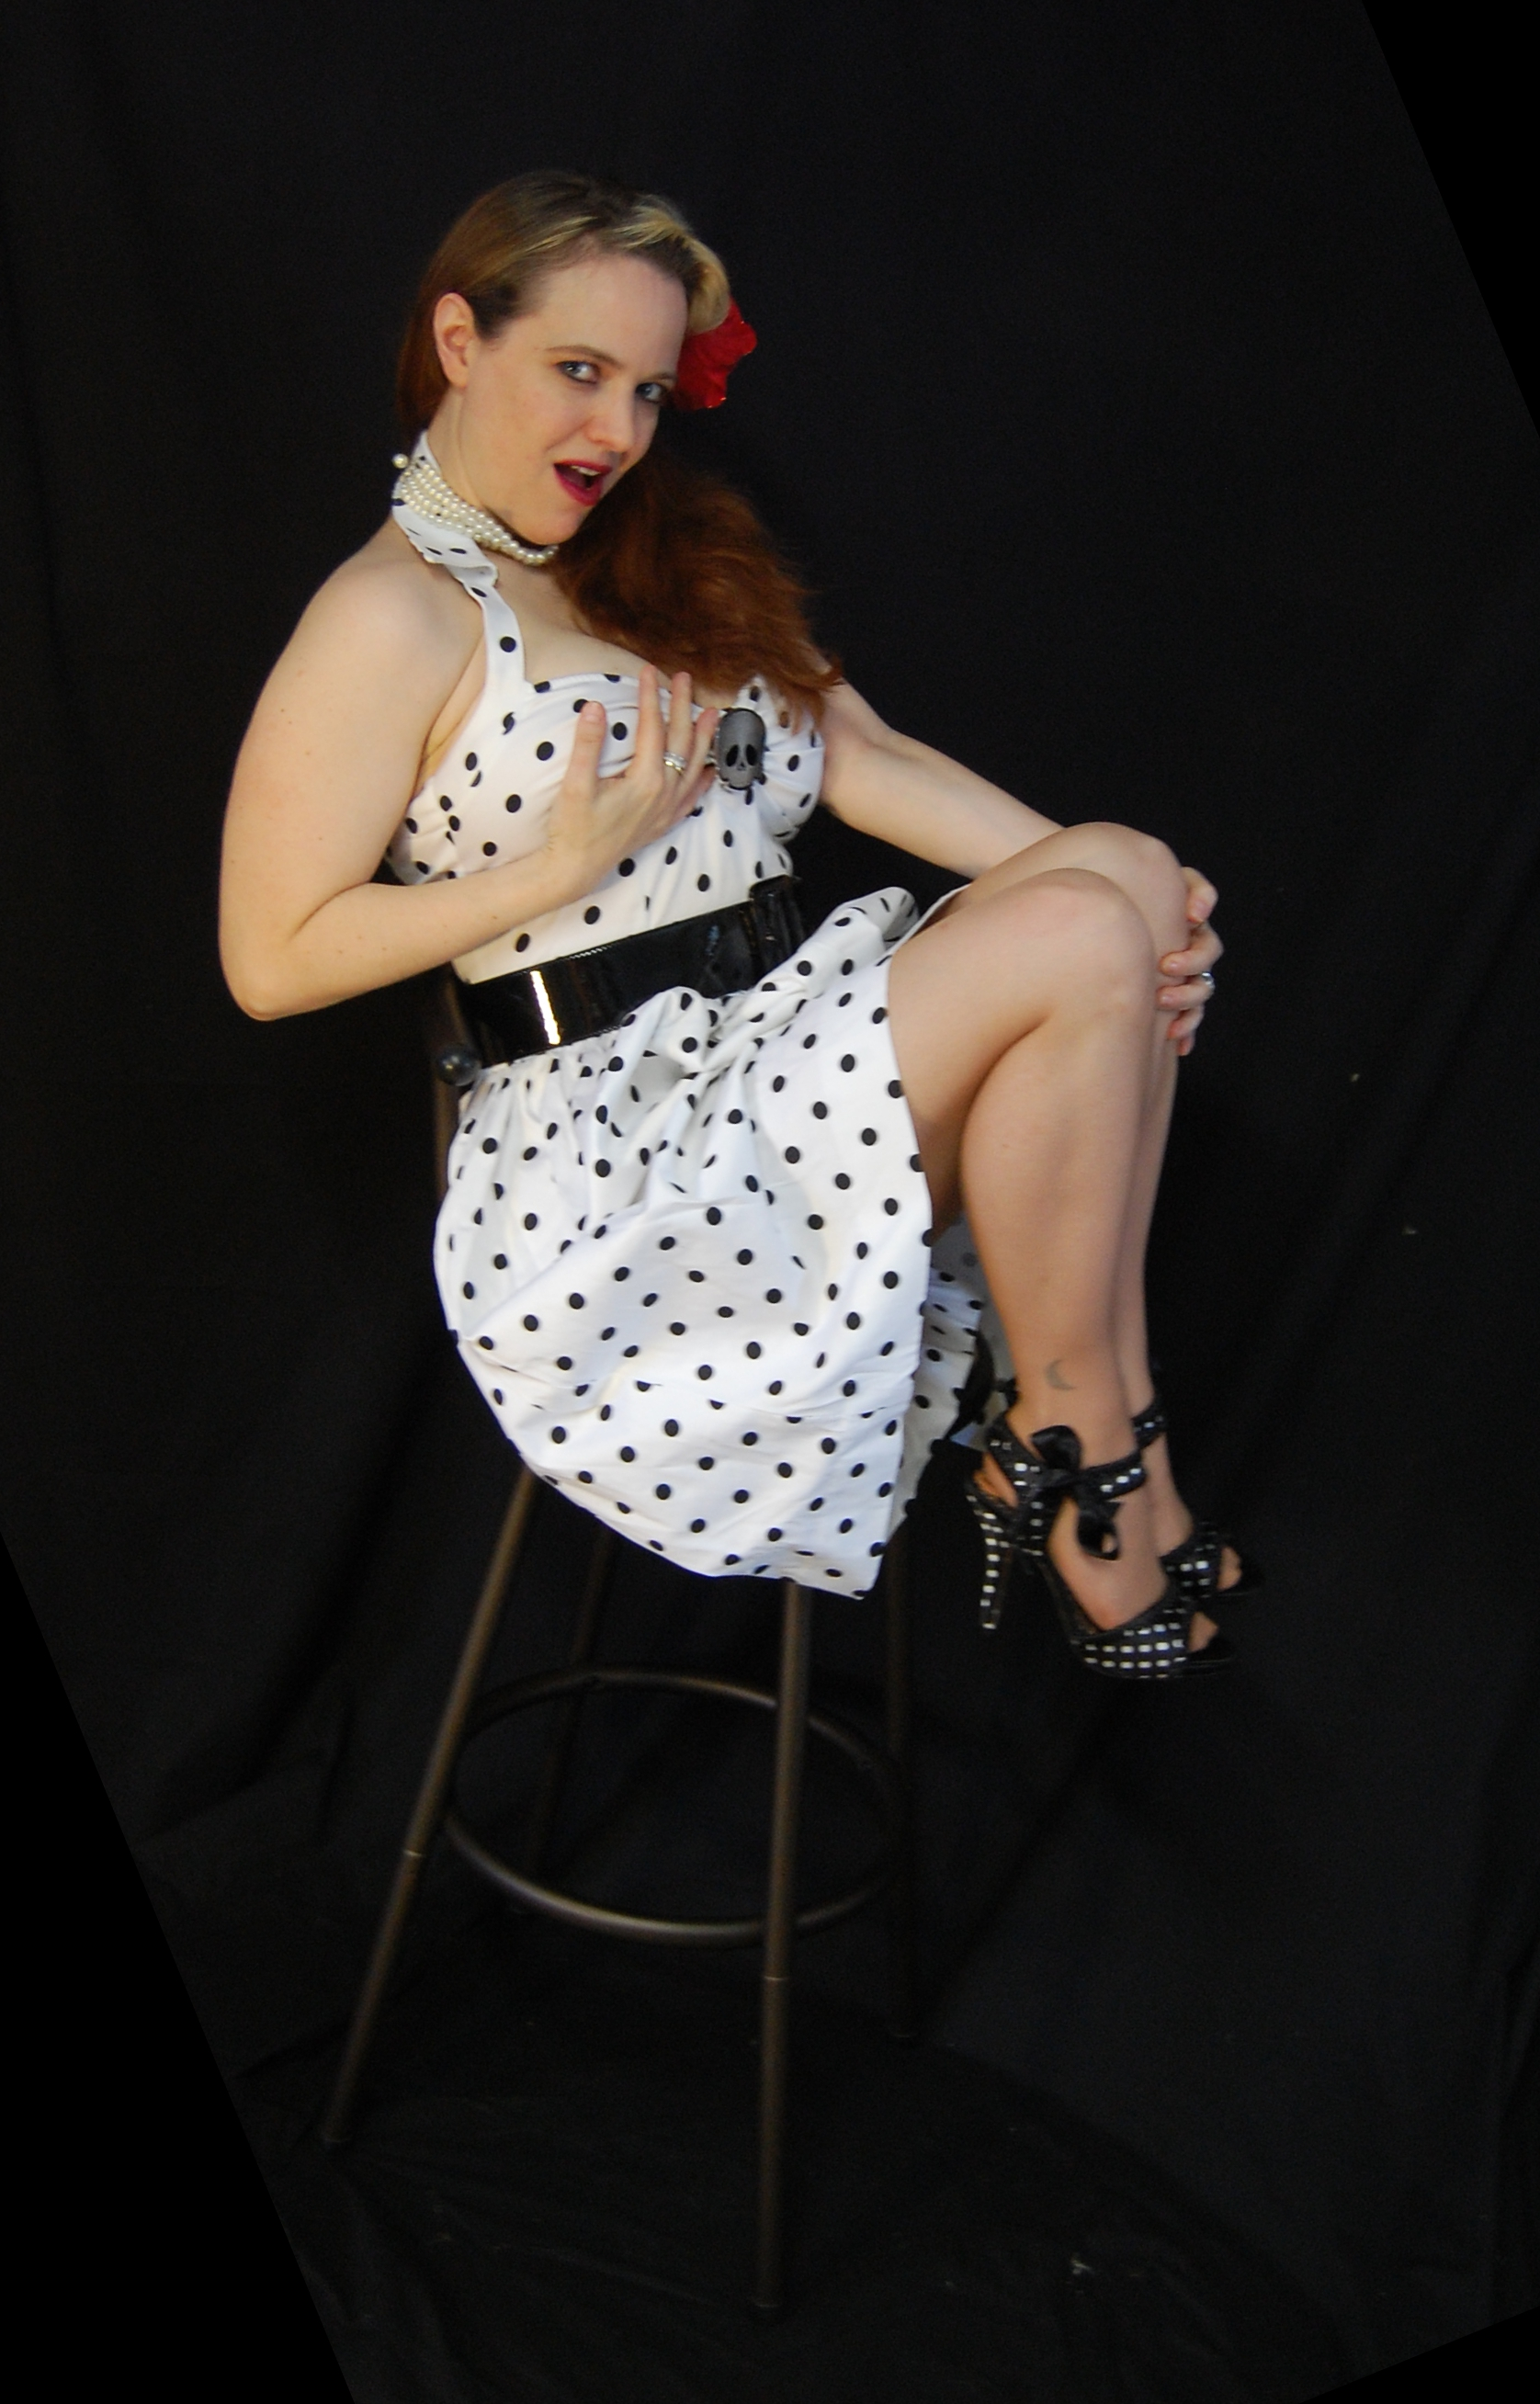 2010 Fife pinup white dress 0206